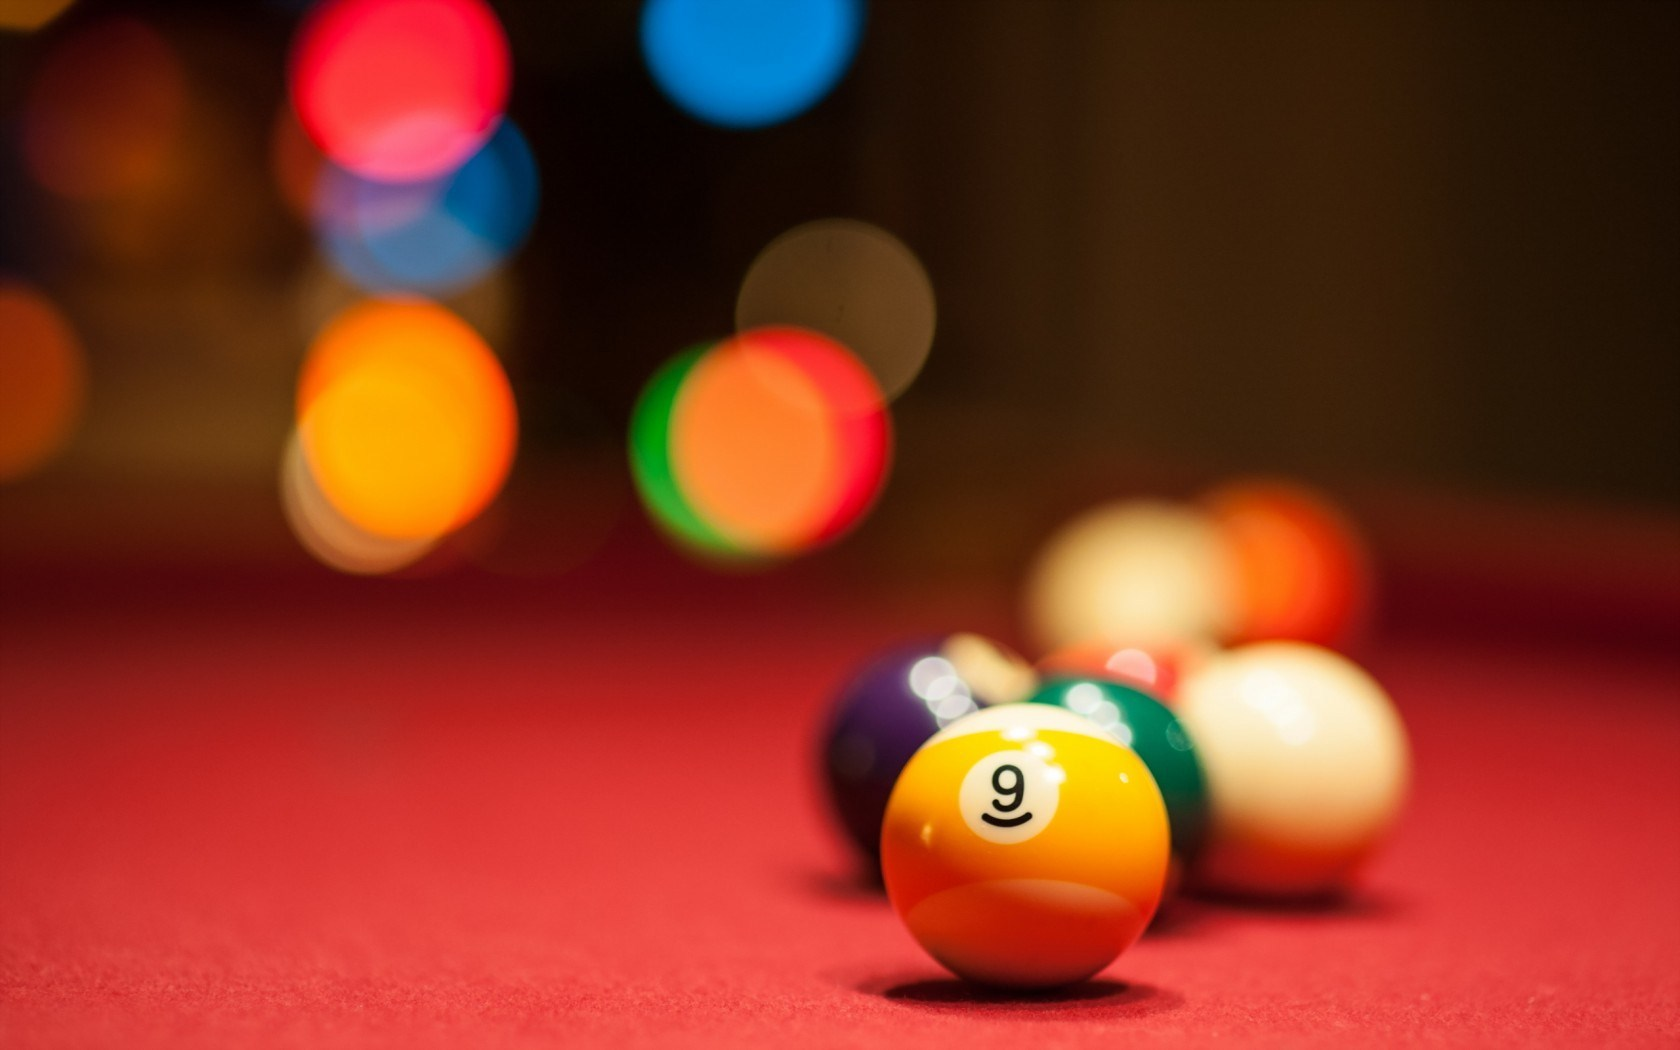 Cool Billiards Wallpaper